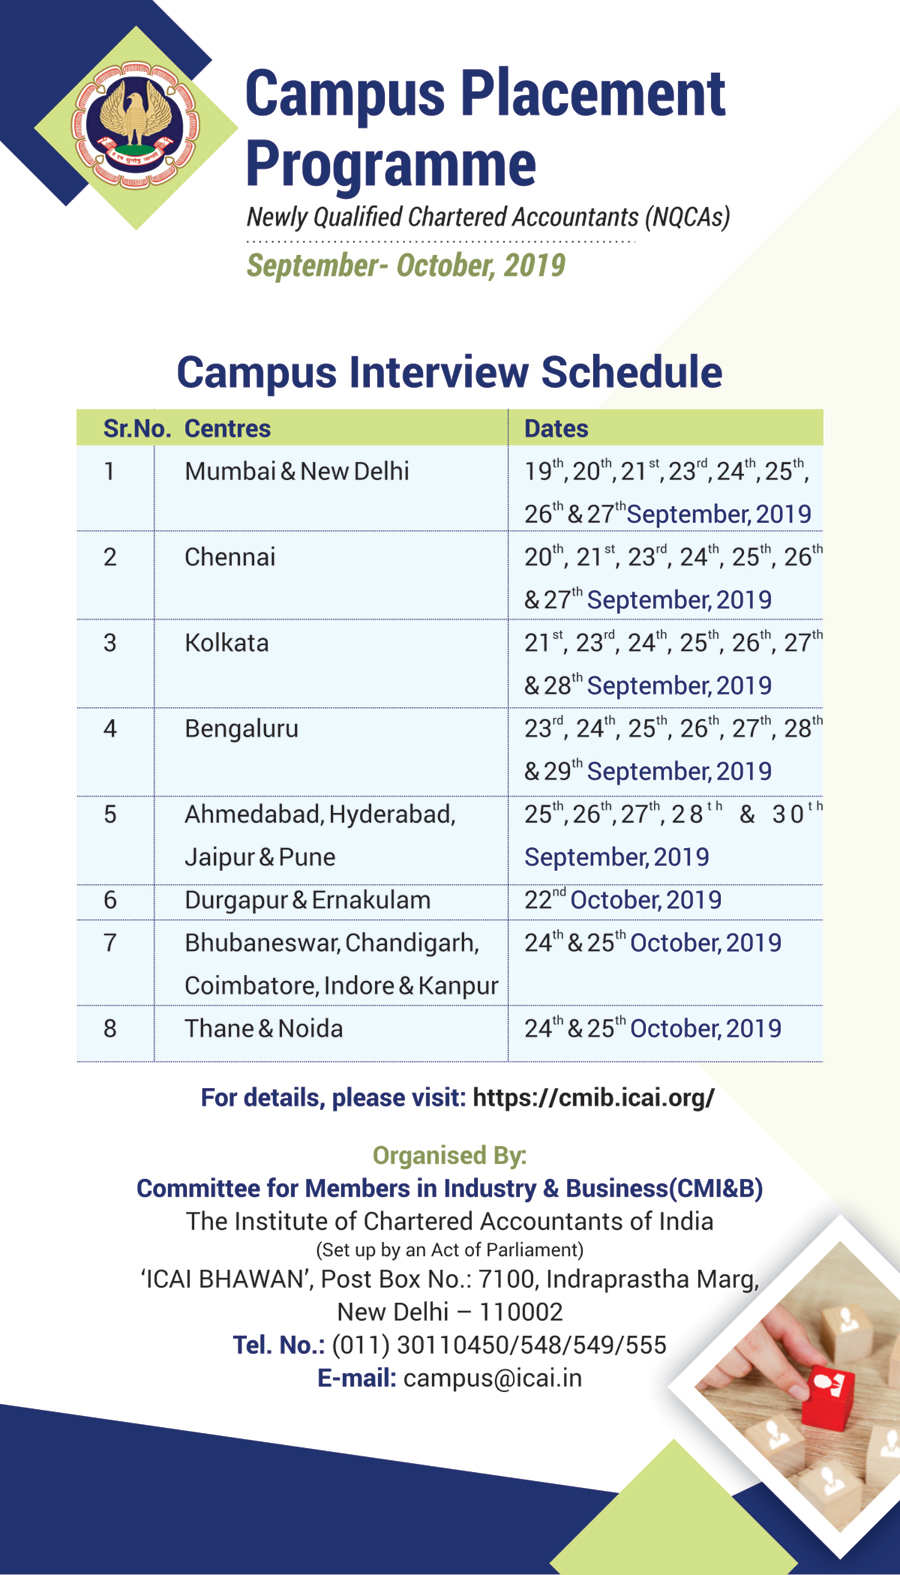 ICAI's 50th Campus Placement Programme